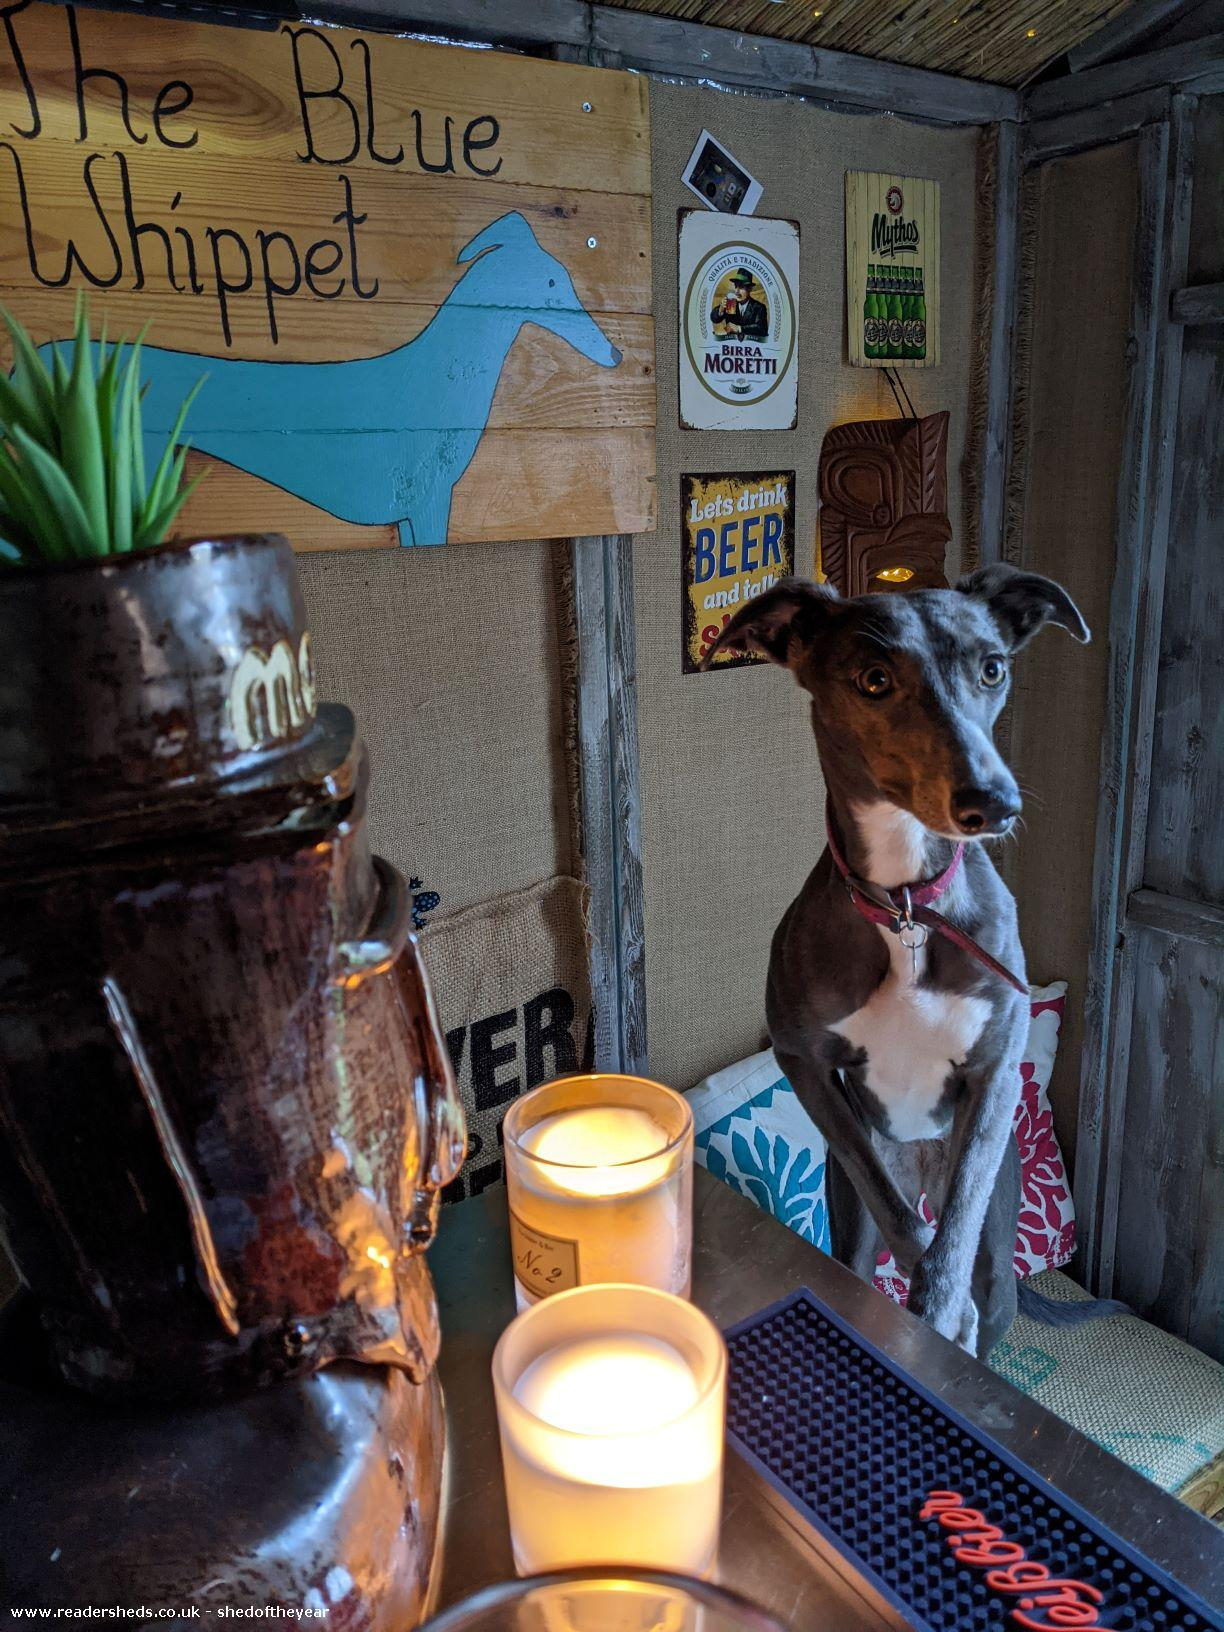 Photo of The Blue Whippet, entry to Shed of the year-Front view